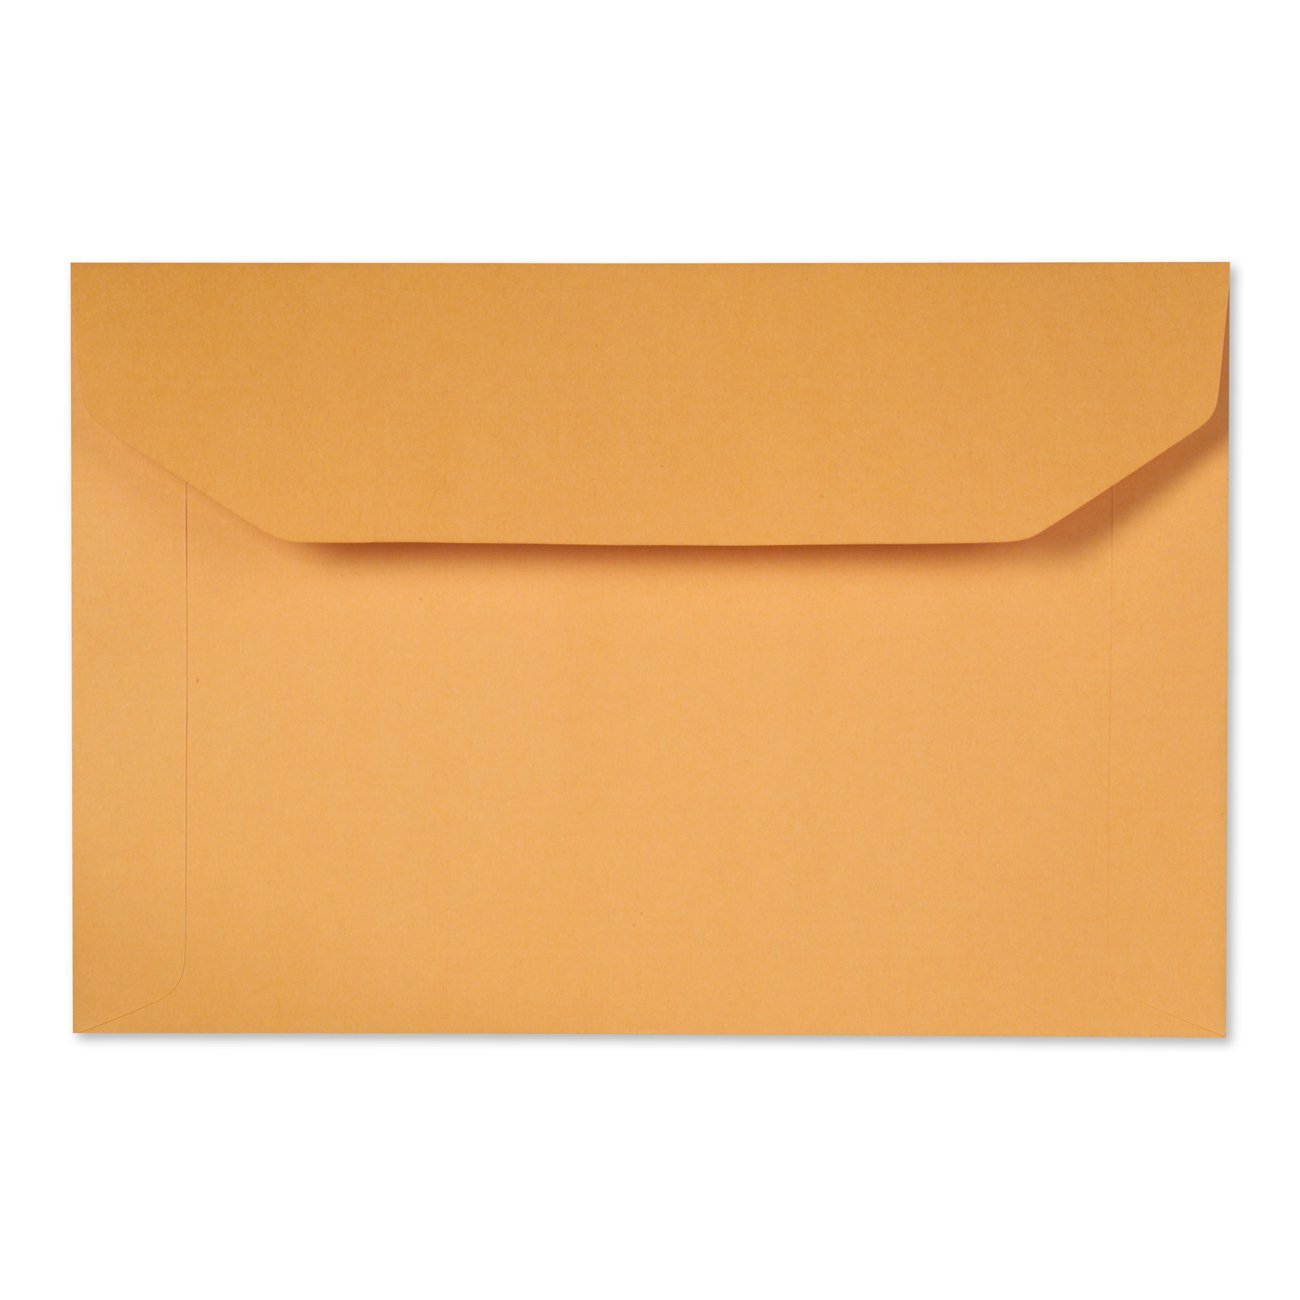 ALL-STATE LEGAL File Envelope, Legal Size, 10'' x 15'', Kraft 40 lb, Ungummed Flap, 100 per Box by ALL-STATE LEGAL